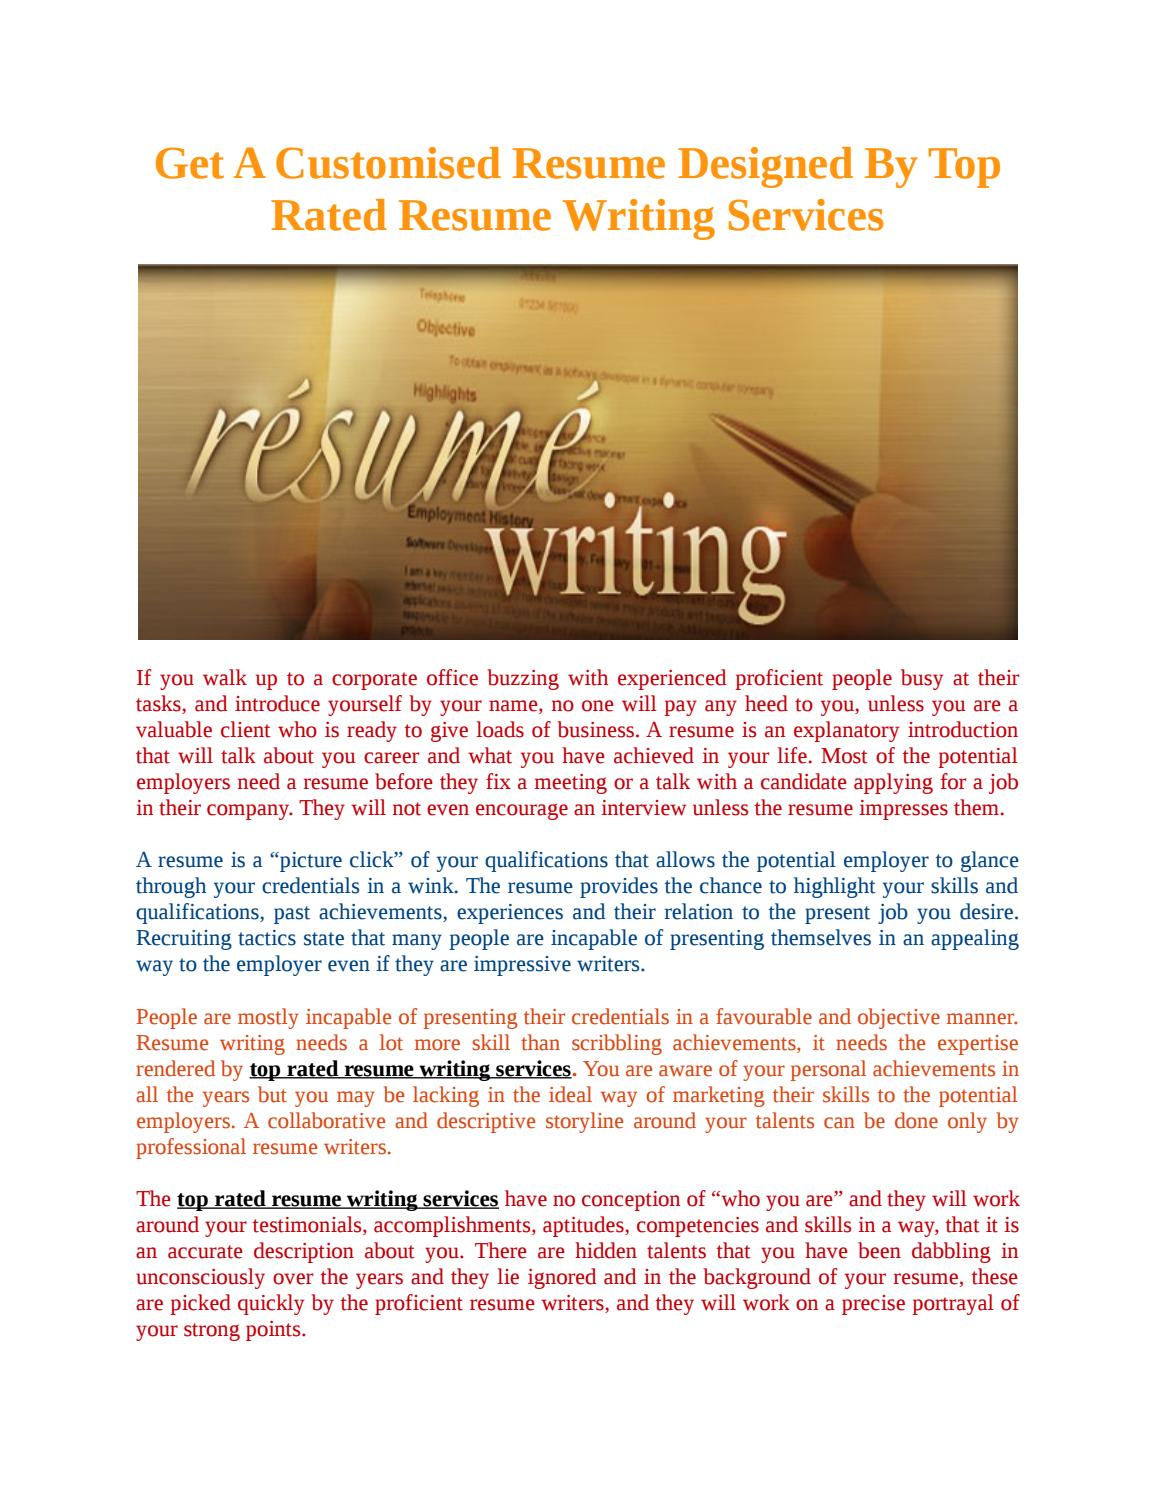 Best Rated Resume Writing Services Top Rated Resume Writing Services Mentat By The Mentat Issuu